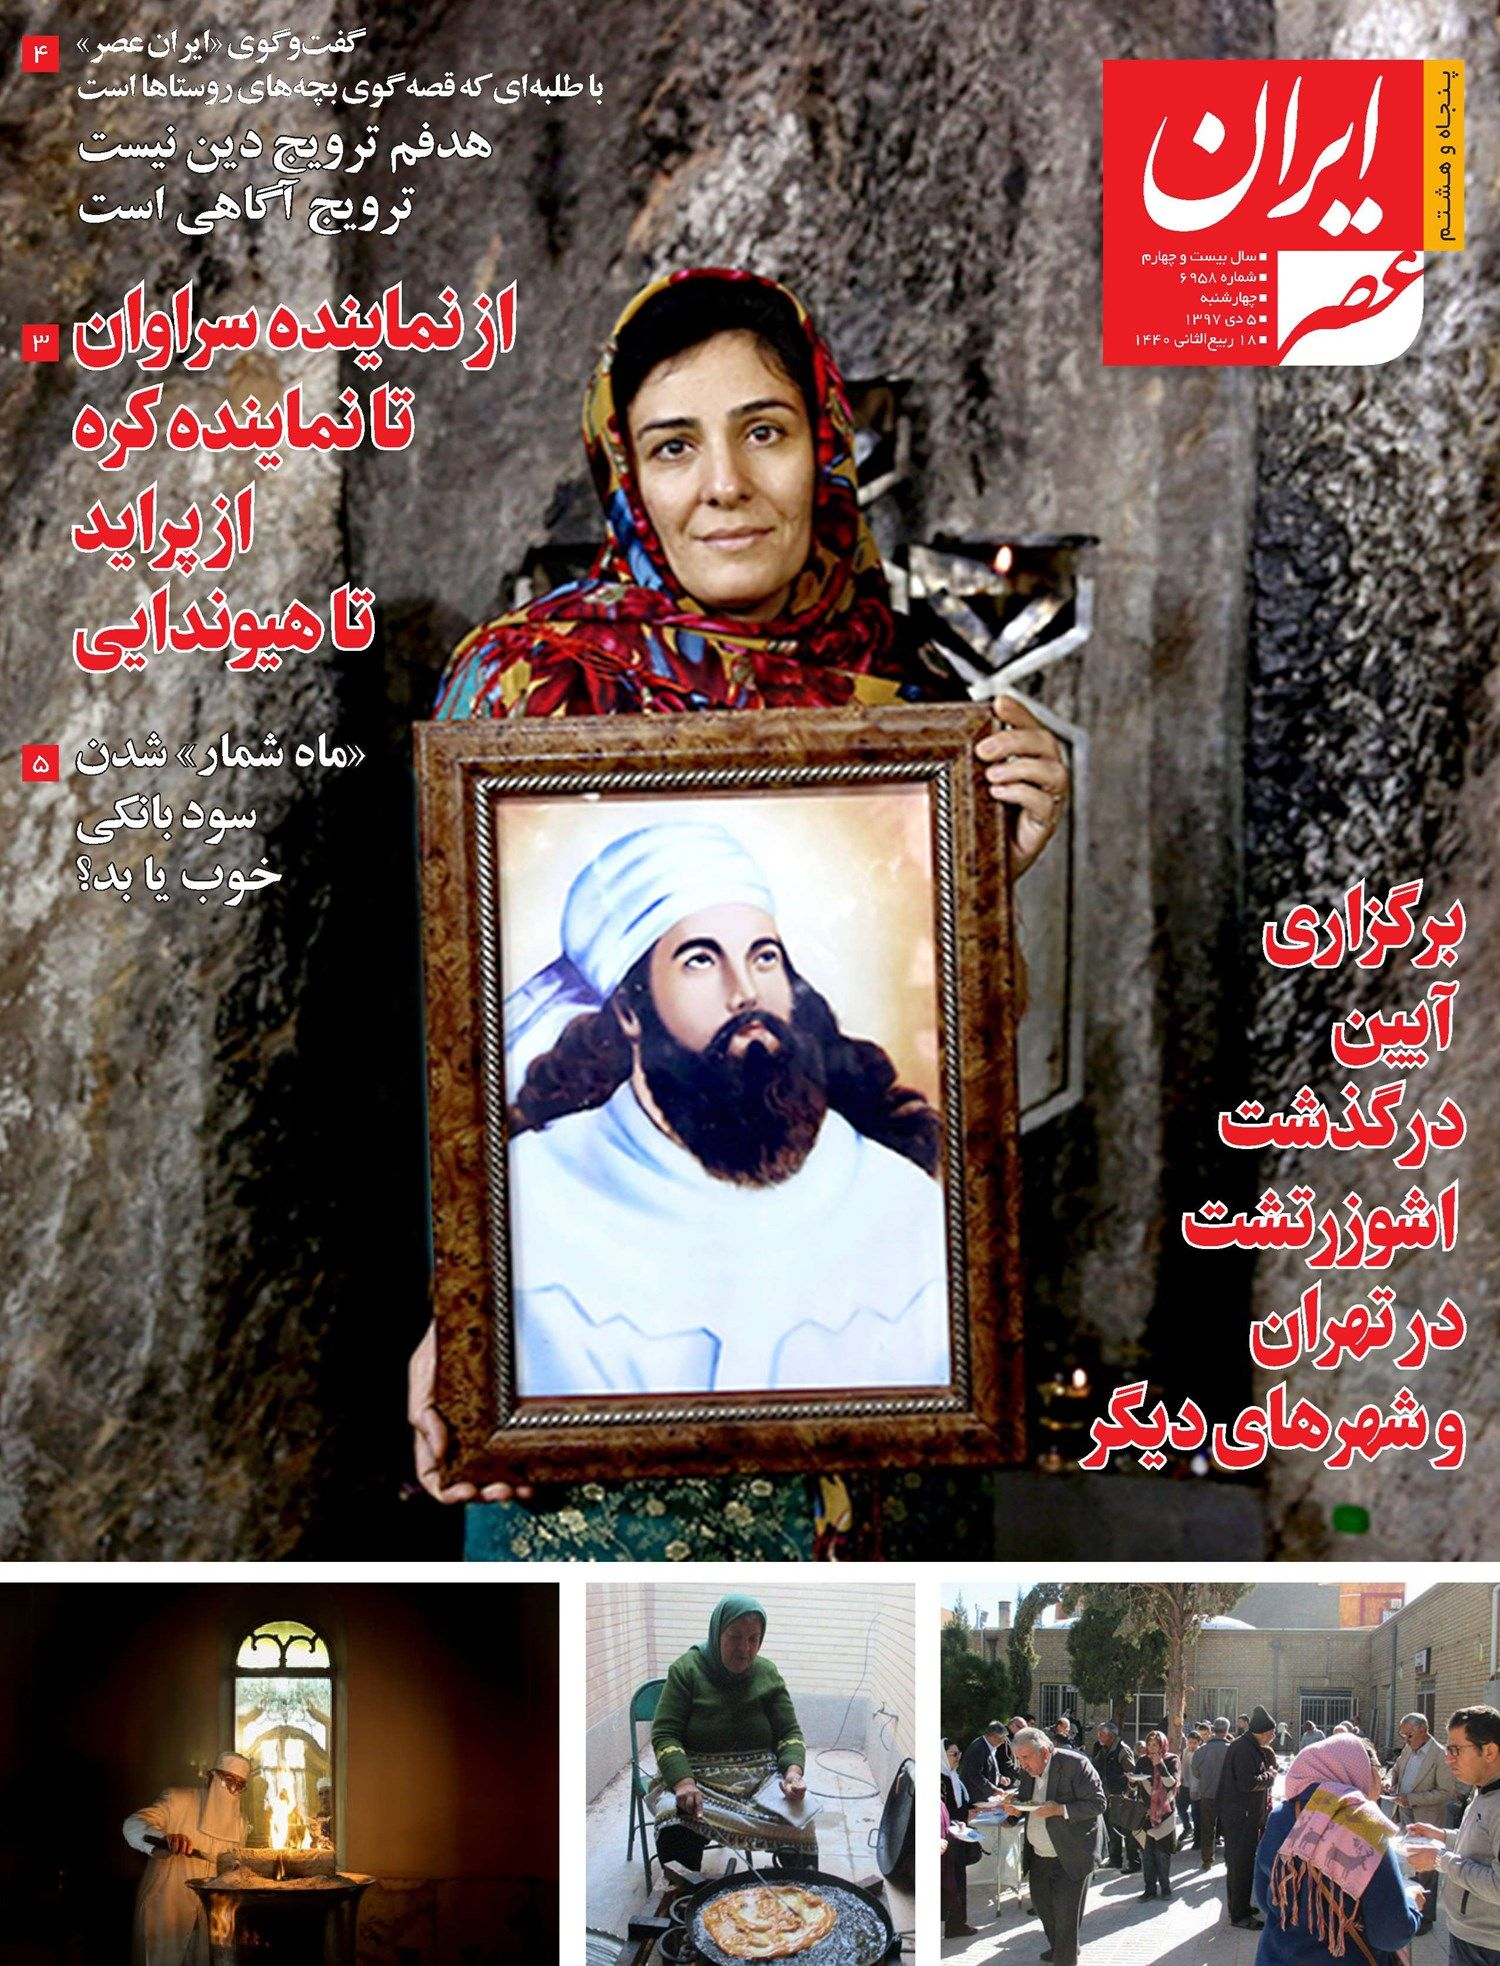 Pin By Irannewspaper On Irannewspaper Baseball Cards Cards Movie Posters